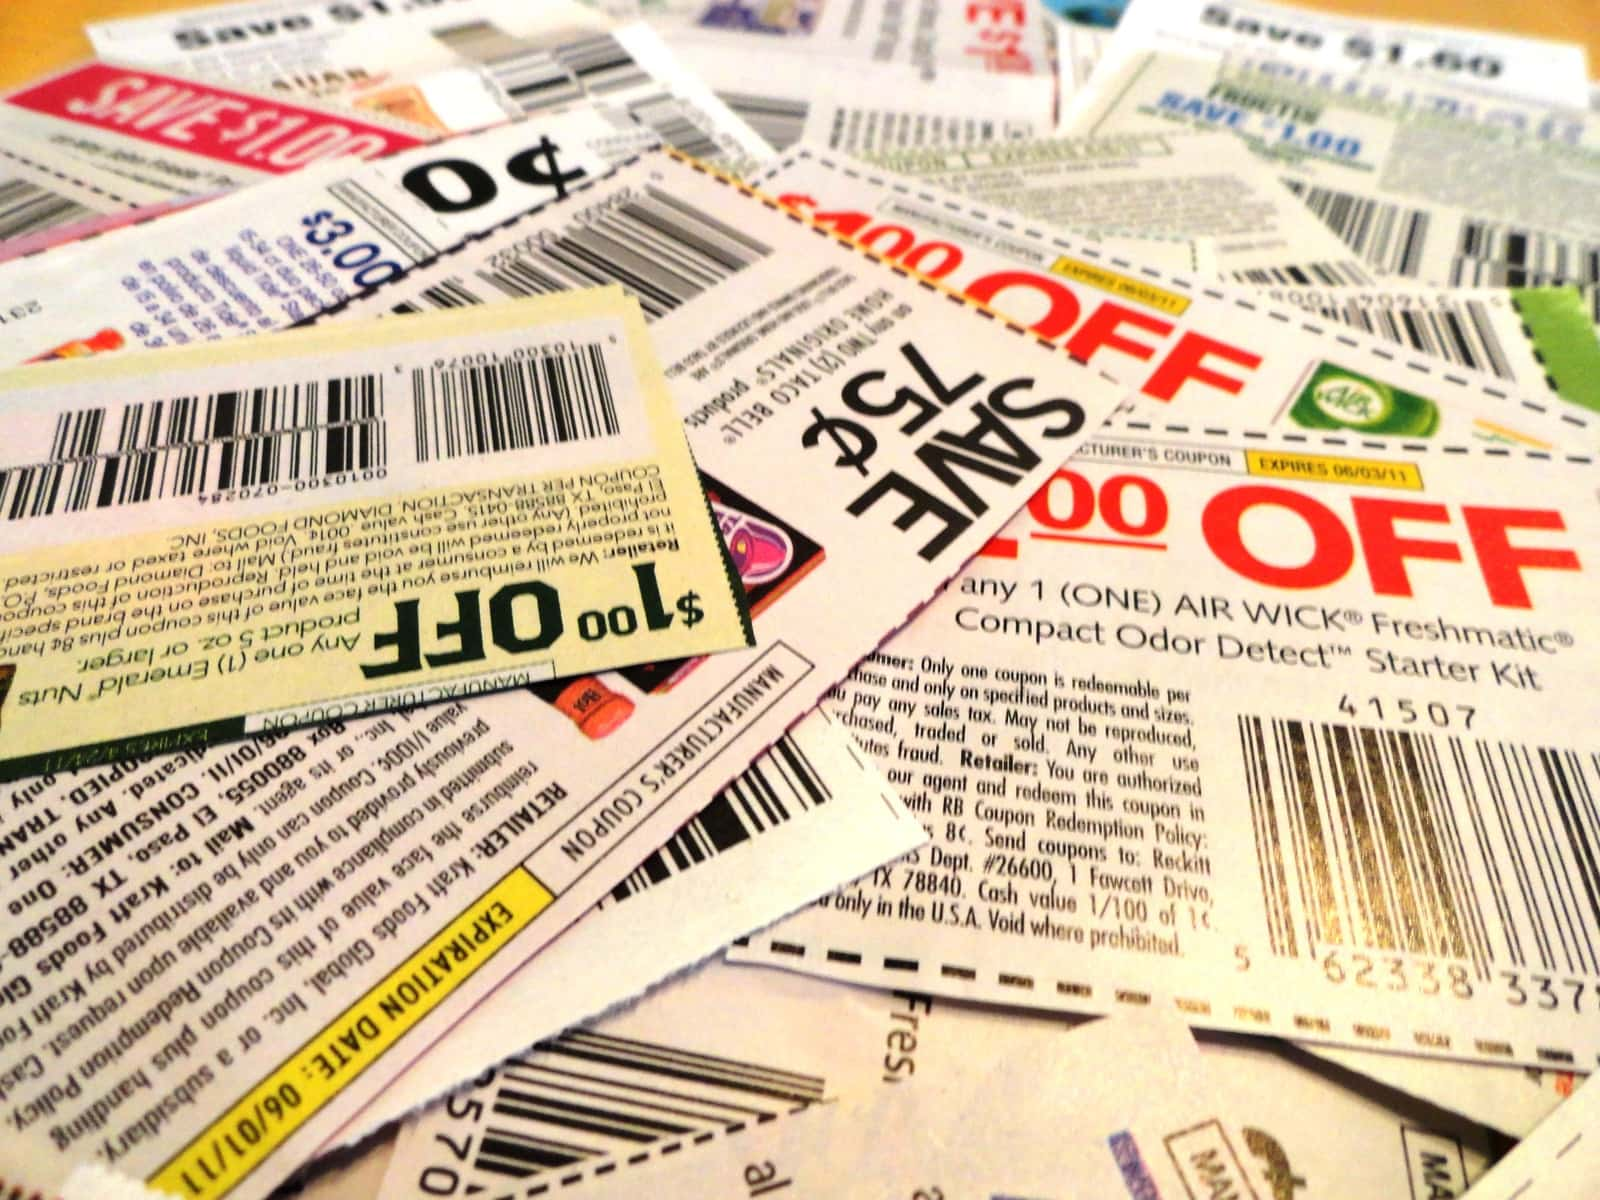 The Best Places To Find Free Stuff and Coupons